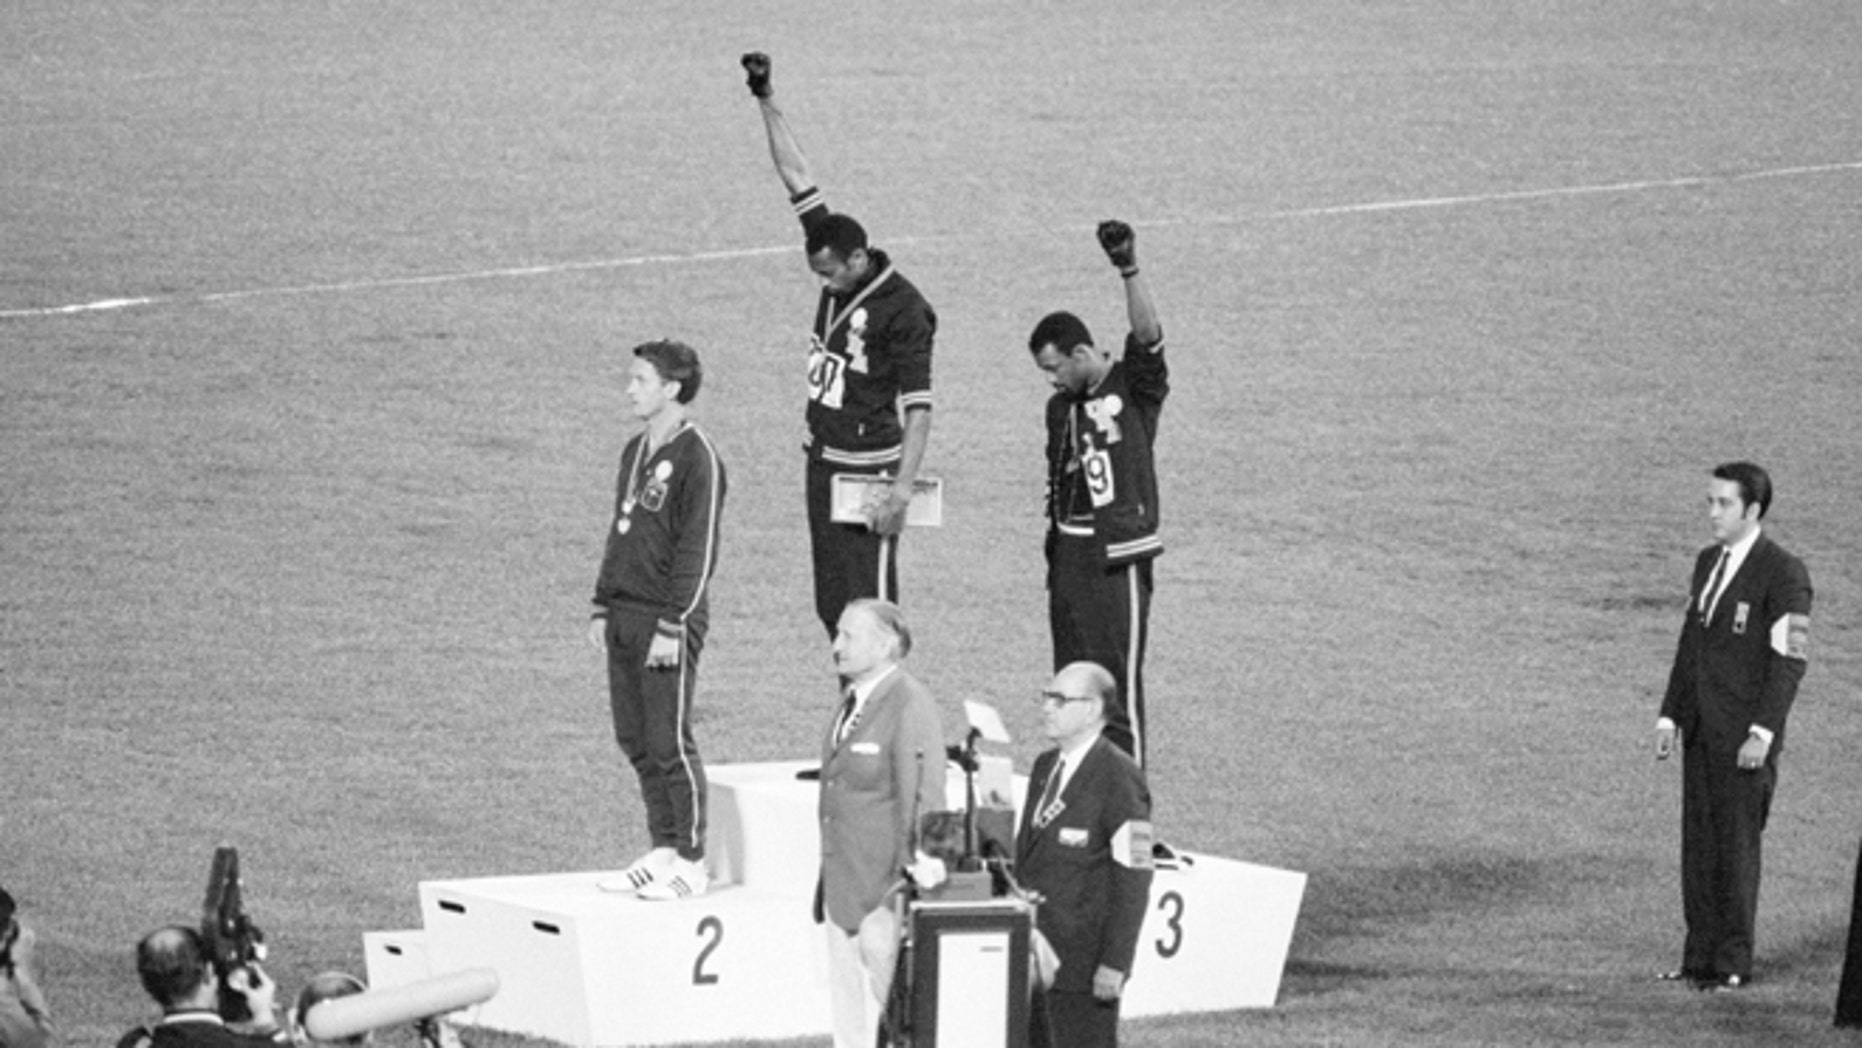 Tommie Smith and John Carlos, gold and bronze medalists in the 200-meter run at the 1968 Olympic Games, engage in a victory stand protest against unfair treatment of blacks in the United States. With heads lowered and black-gloved fists raised in the black power salute, they refuse to recognize the American flag and national anthem. Australian Peter Norman is the silver medalist.